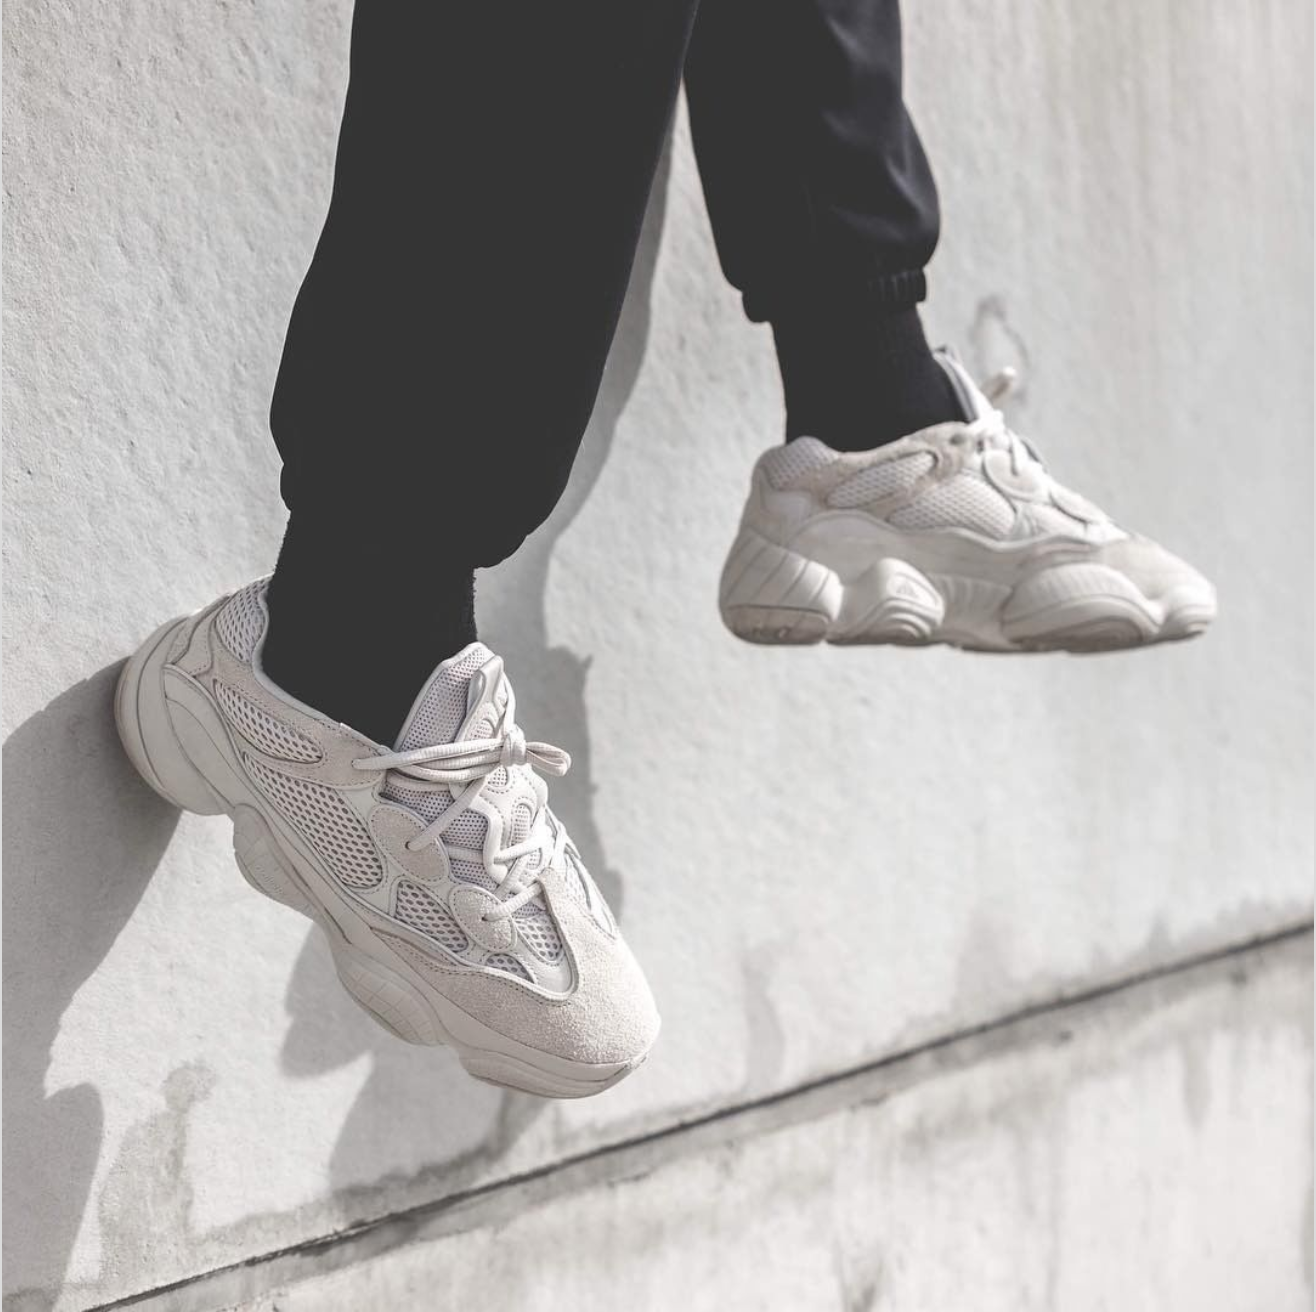 hot sale online 9beae 21253 adidas Yeezy 500 'Desert Rat' - Sneaker Myth | ALBUM ART in ...